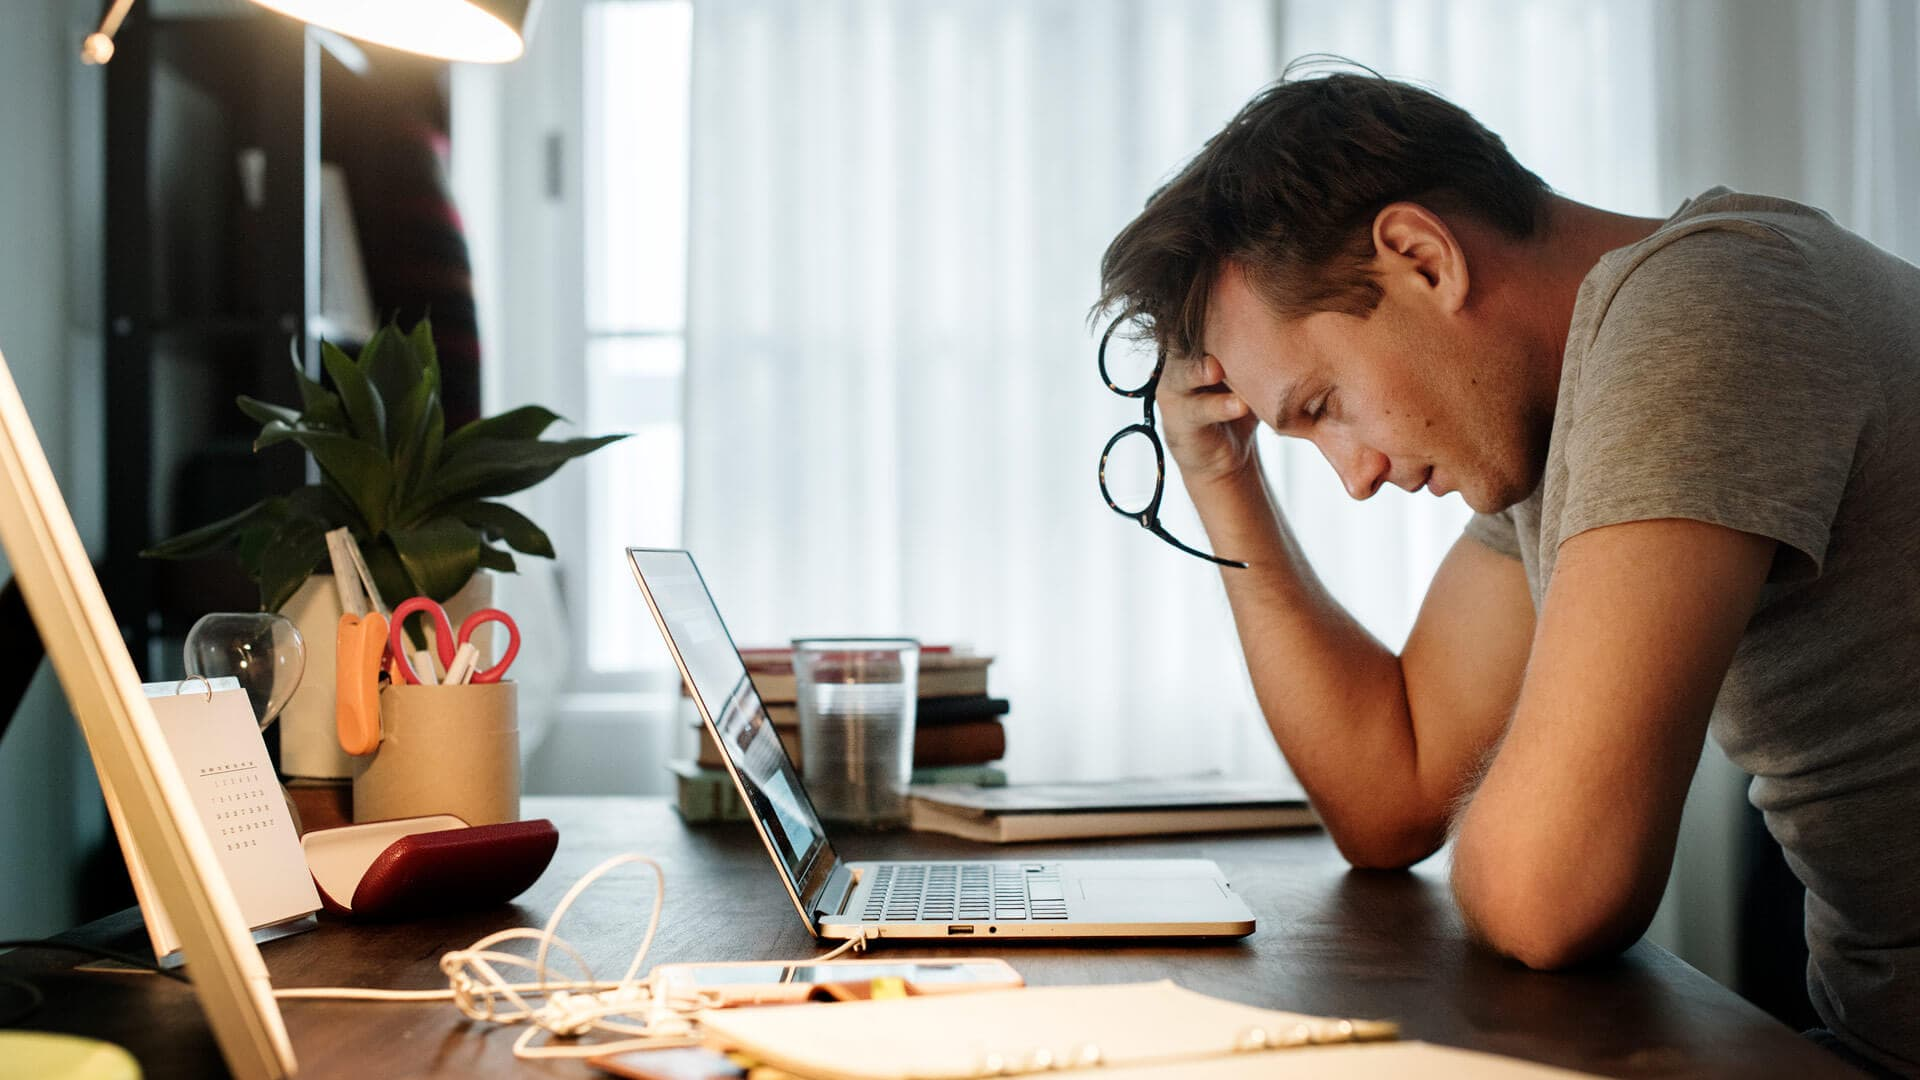 Man stressed while working on laptop at home.